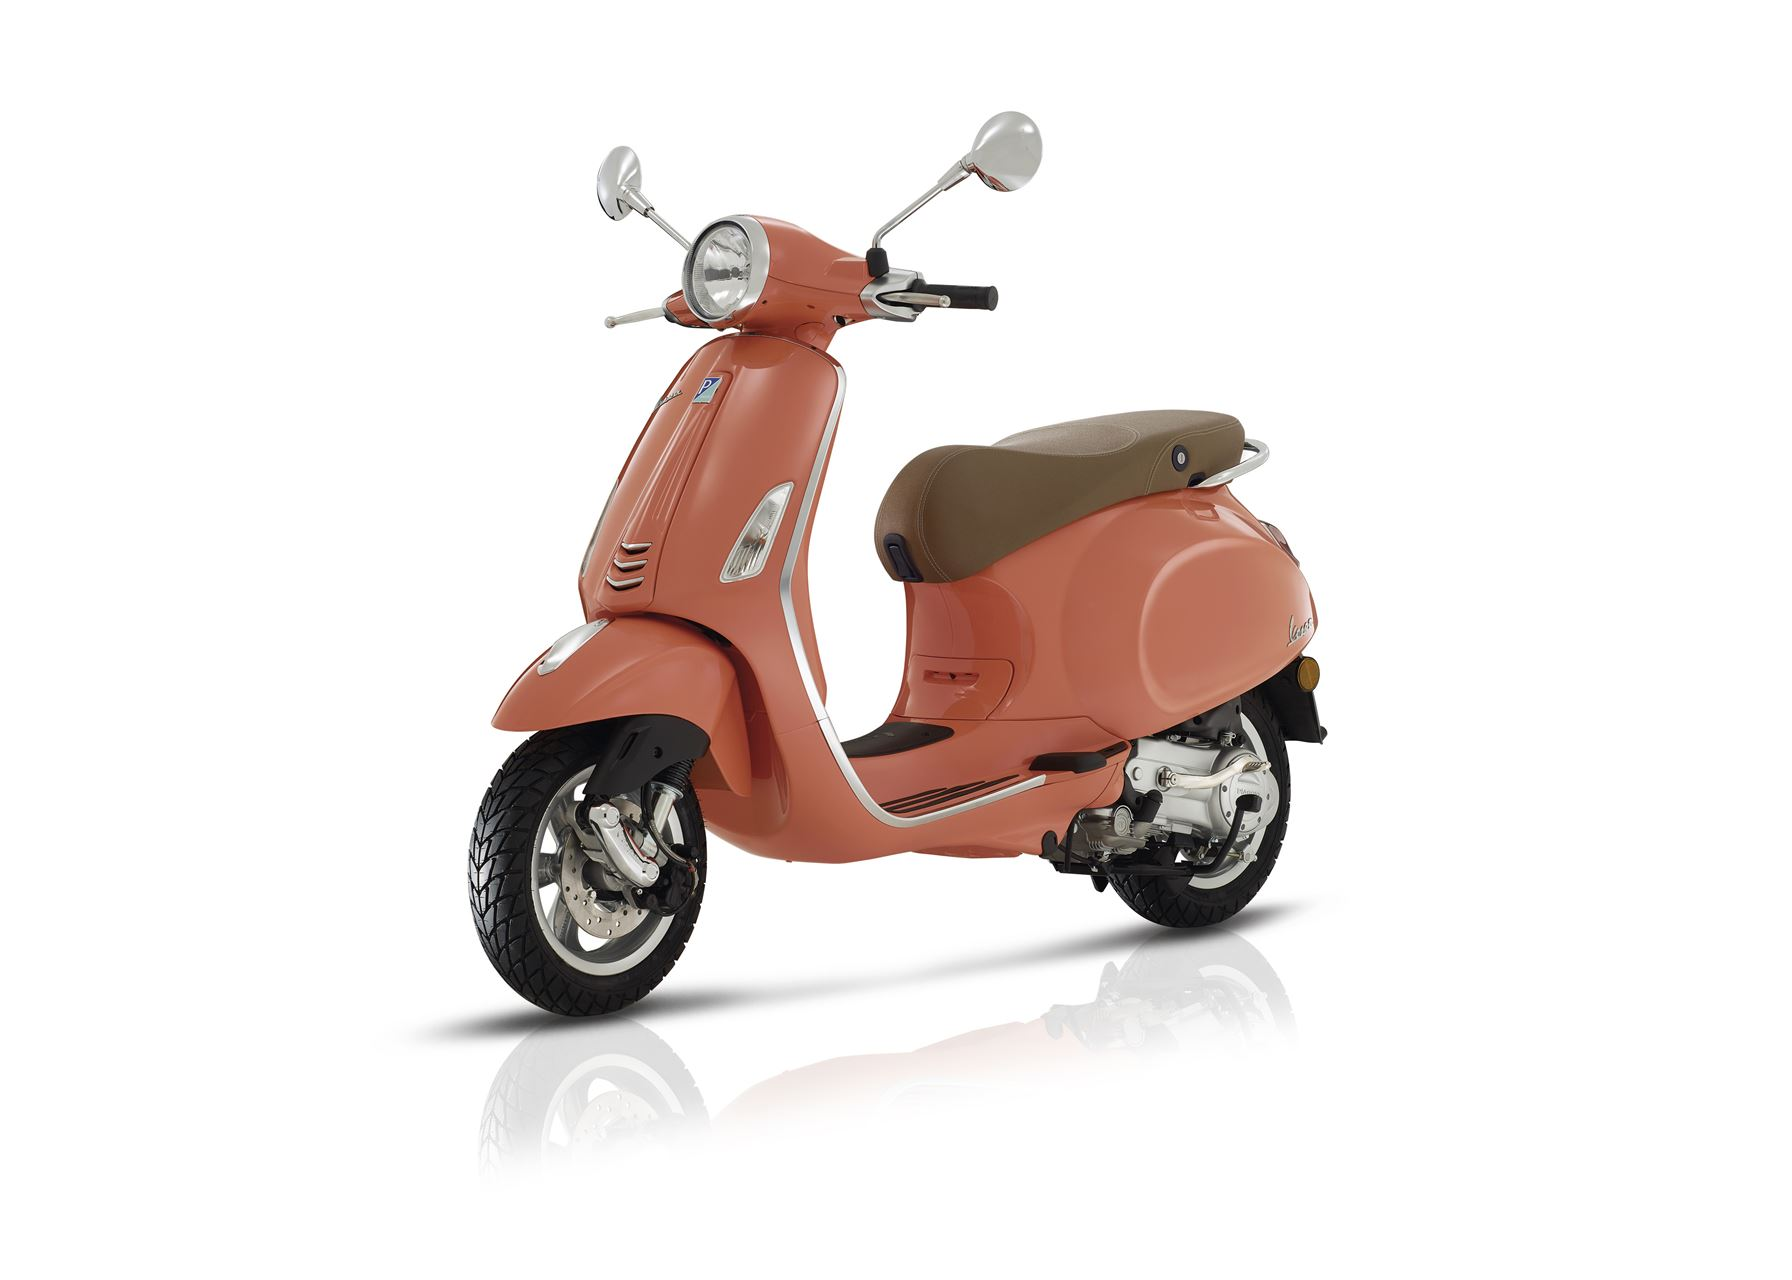 vespa primavera 50 2t scooter gama 50cc andar de moto. Black Bedroom Furniture Sets. Home Design Ideas